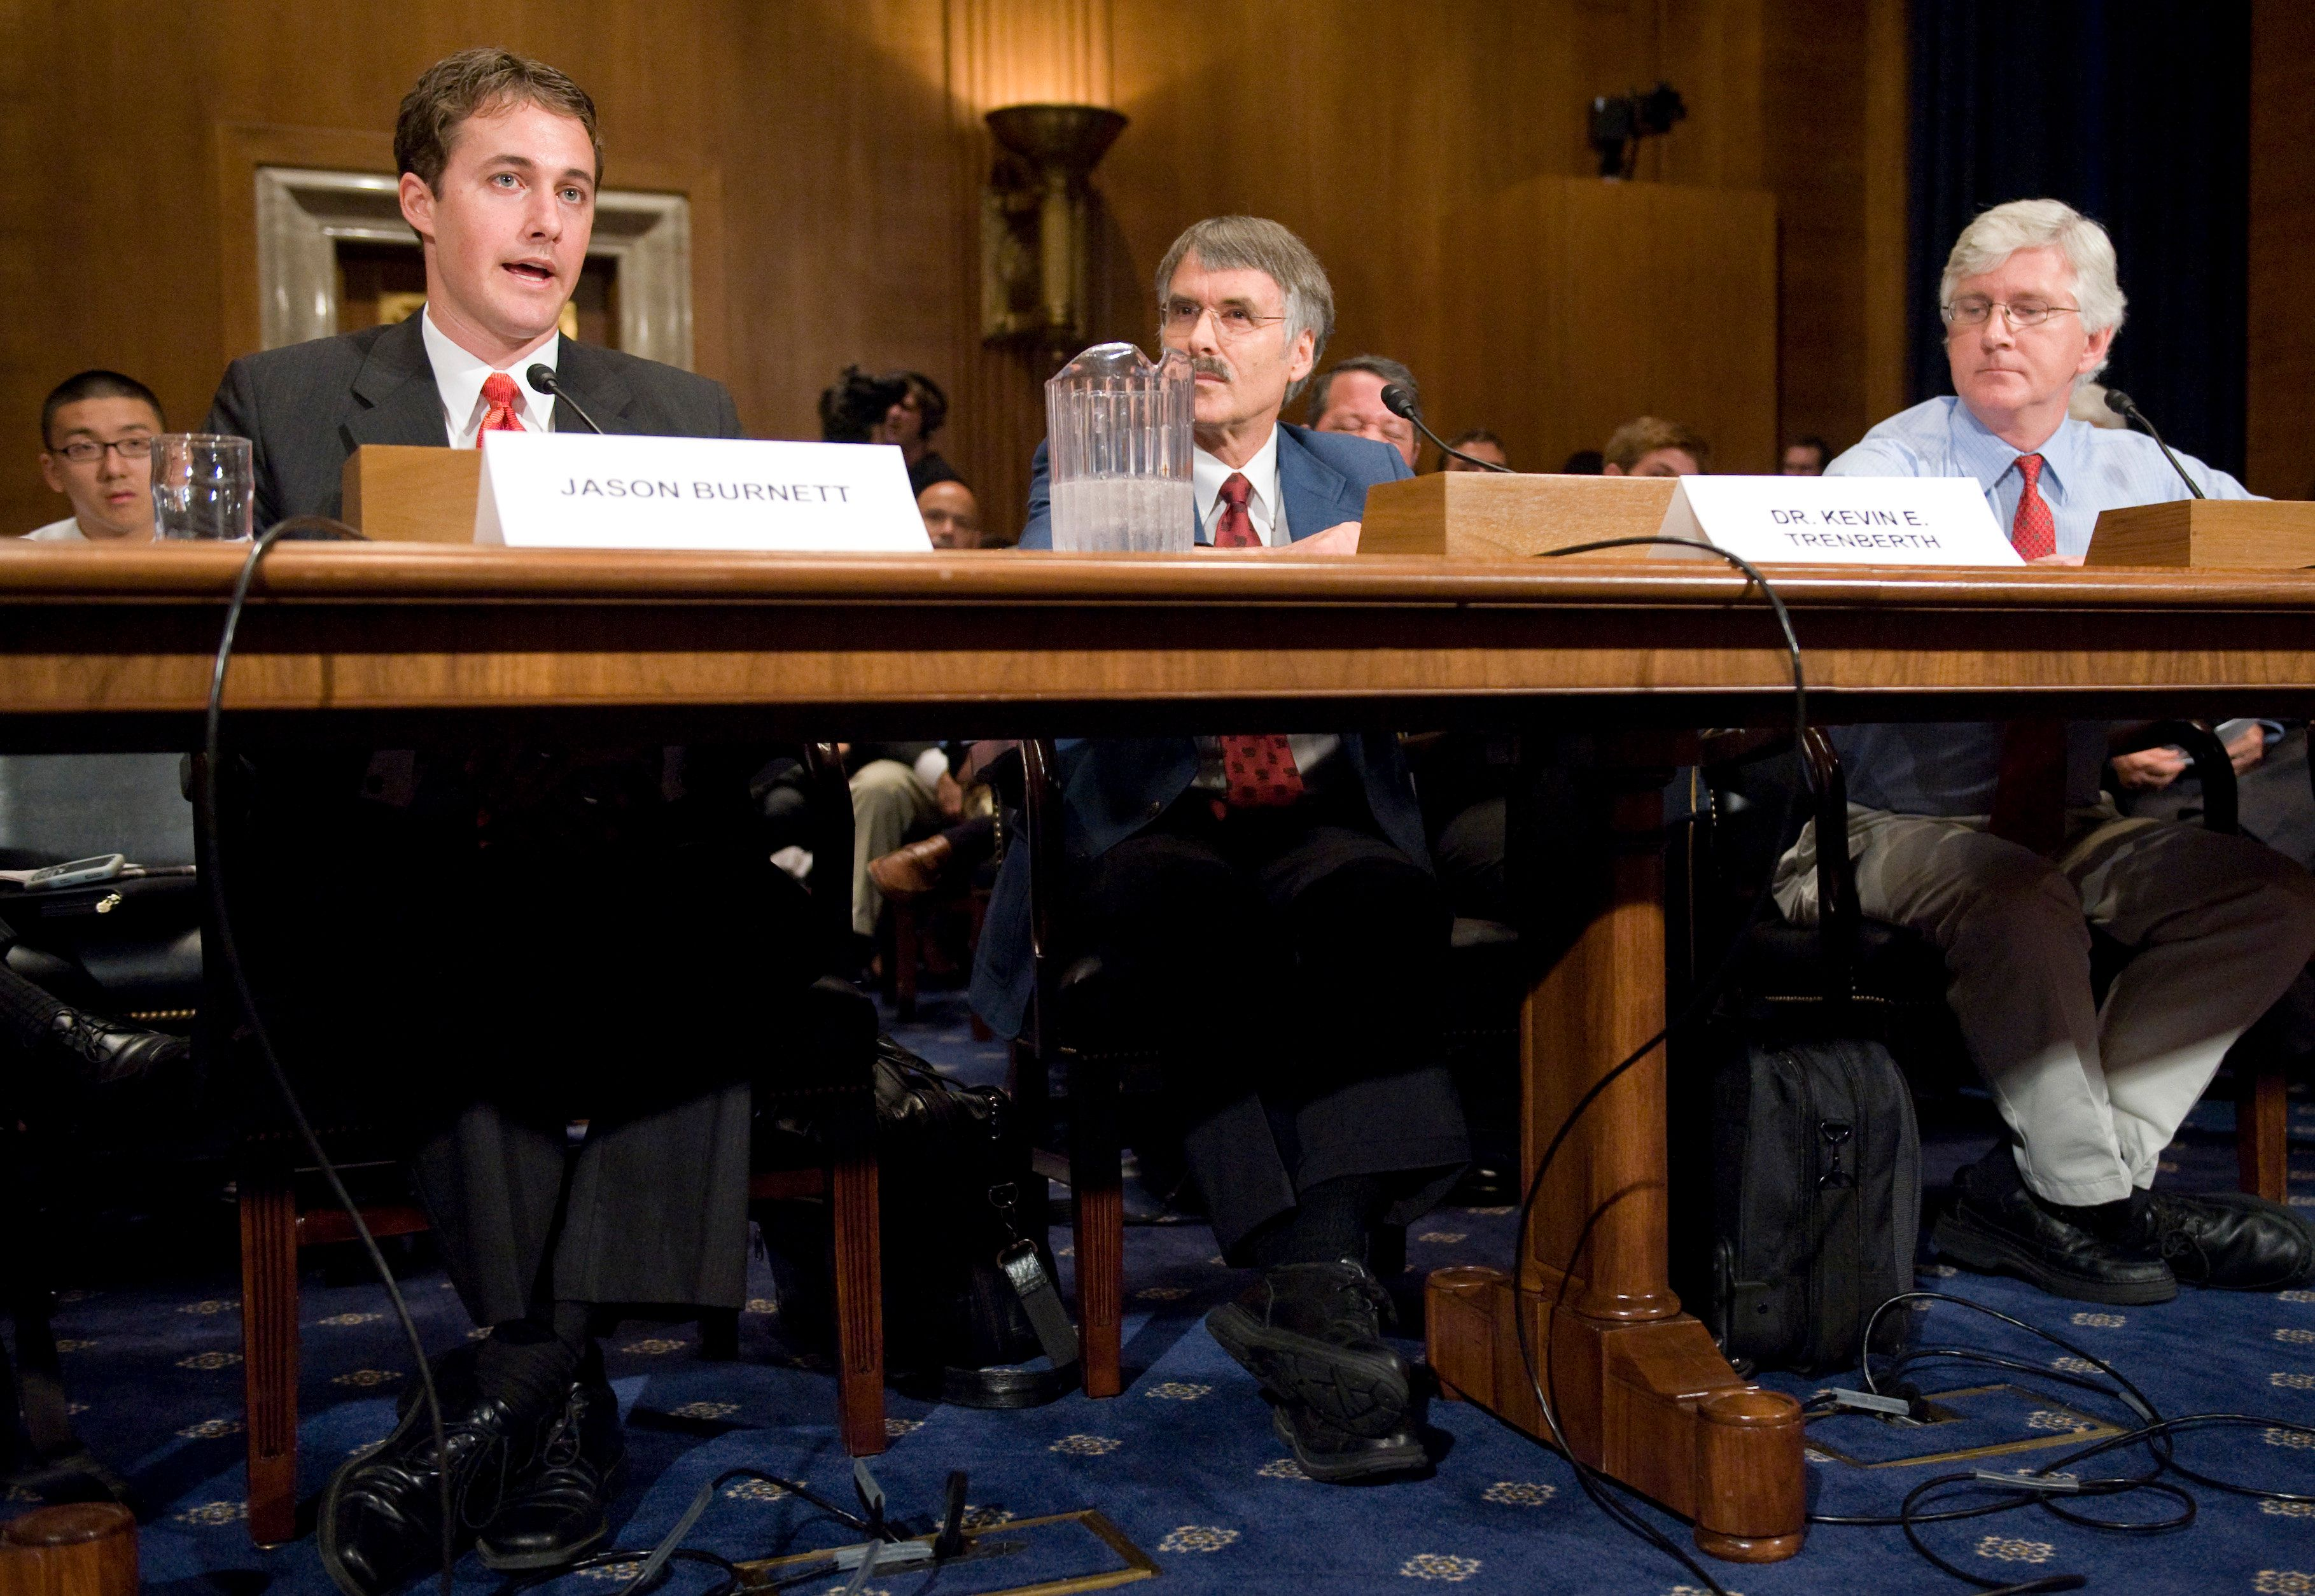 UNITED STATES - JULY 22:  From left, former Associate Deputy EPA Administrator Jason Burnett, Kevin Trenberth, head of the climate analysis section at the National Center for Atmospheric Research, Climate and Global Dynamics Division, and Roy Spencer, principal research scientist in the Earth System Science Center at the University of Alabama in Huntsville, testify during the Senate Environment and Public Works Committee hearing on 'An Update on the Science of Global Warming and its Implications,' on Tuesday, July 22, 2008. The hearing touched on allegations that the White House suppressed testimony and other findings regarding global warming.  (Photo By Bill Clark/Roll Call/Getty Images)